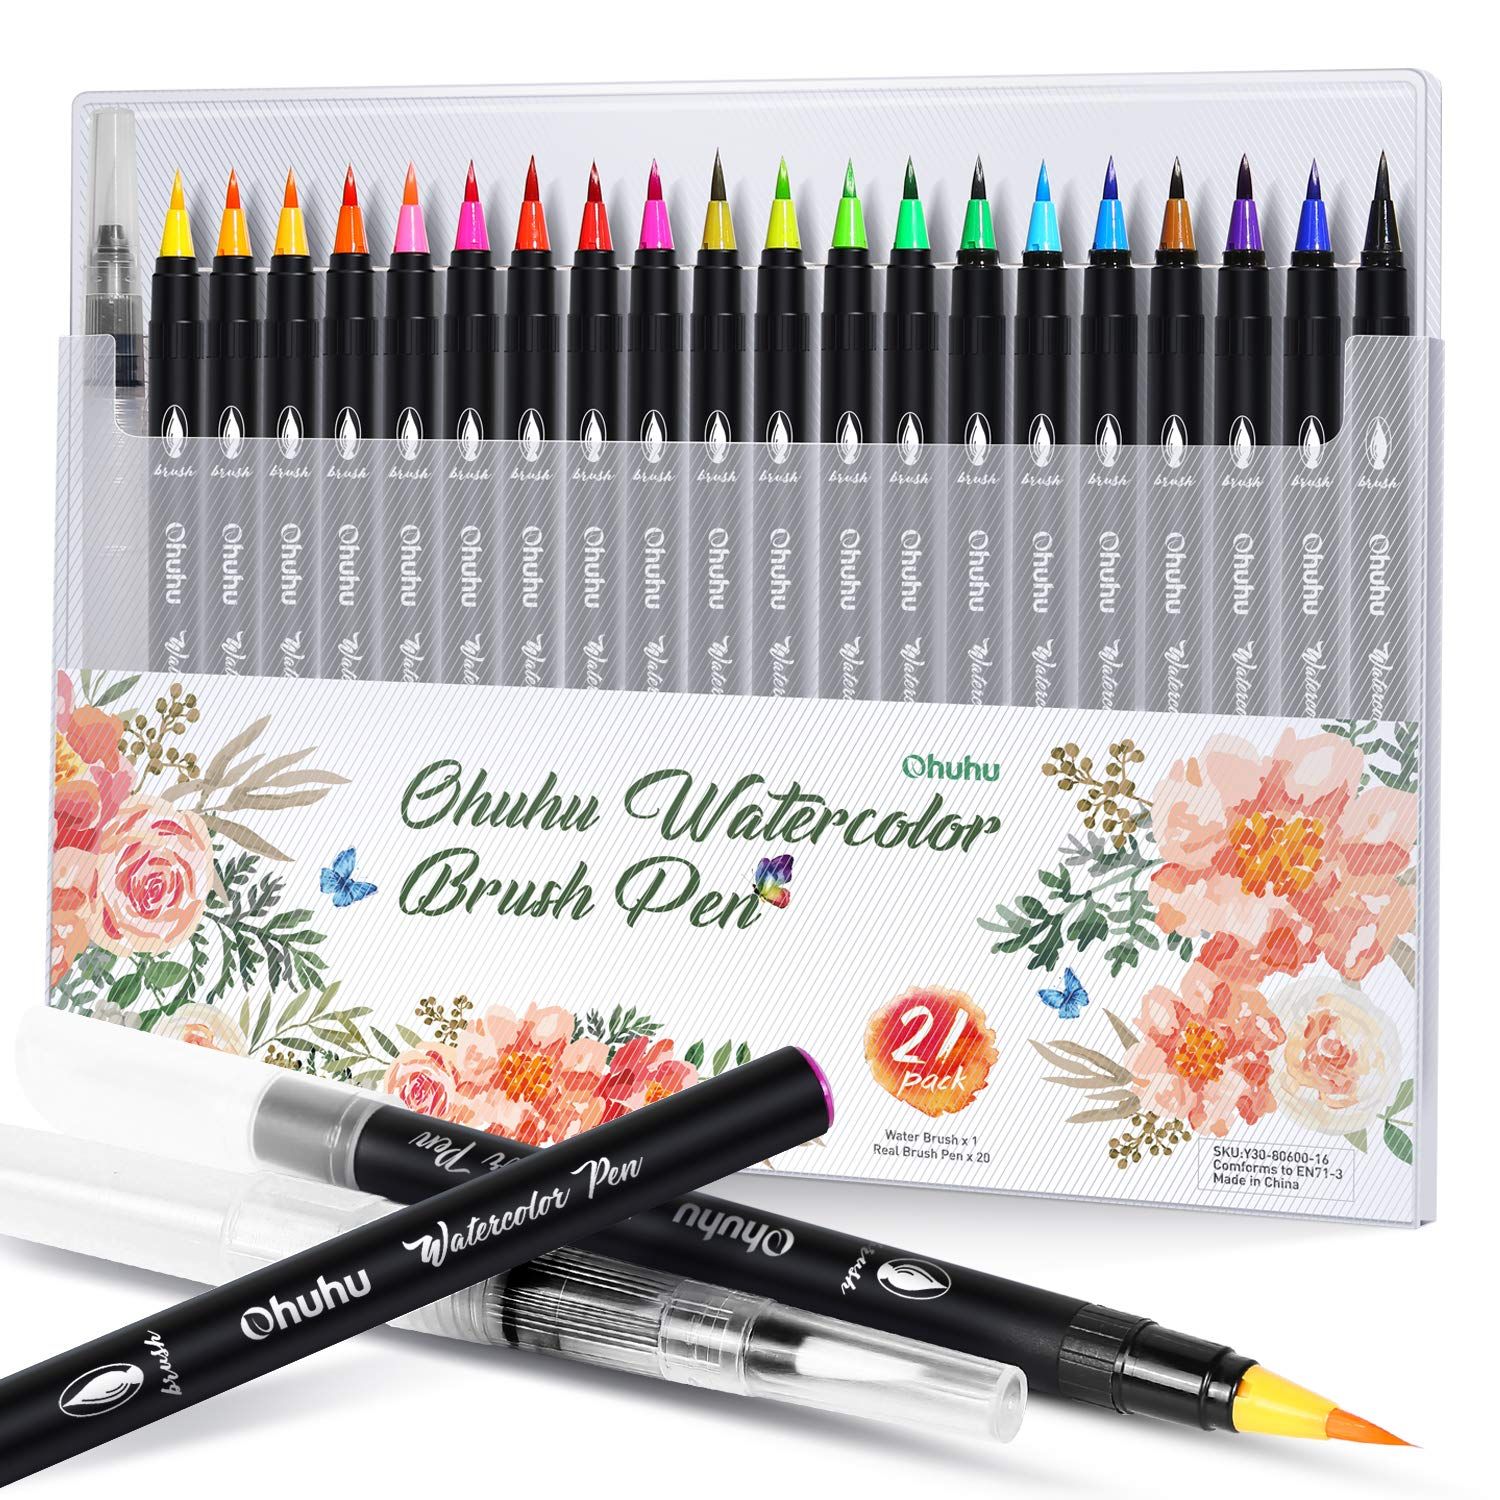 Ohuhu Watercolor Brush Markers Pen, Ohuhu 20 Colors Water Based Drawing Marker Brushes W/ A Water Coloring Brush, Water Soluble for Adult Coloring Books Manga Comic Calligraphy, Back to School Art Supplies by Ohuhu